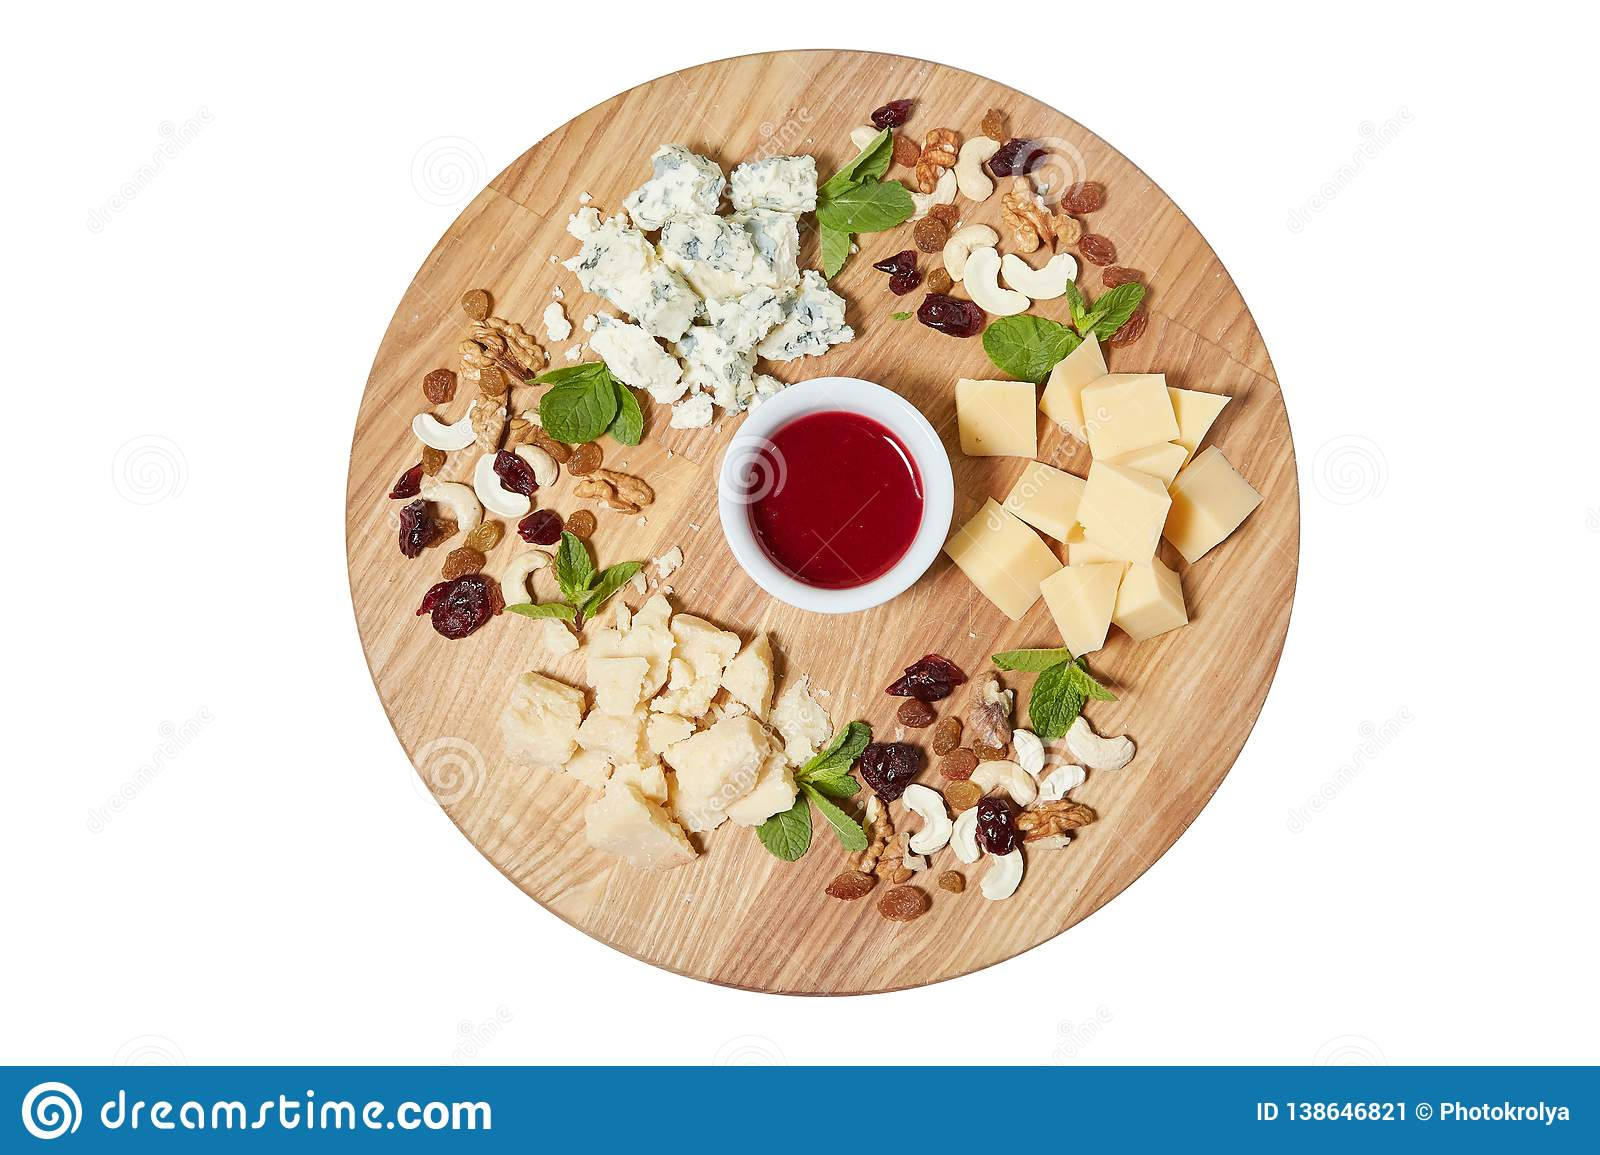 Cheese Plate Antipasti Snack With Mixed Italian Cheese Cashew Fresh Mint Leaves Stock Image Image Of Board Fresh 138646821